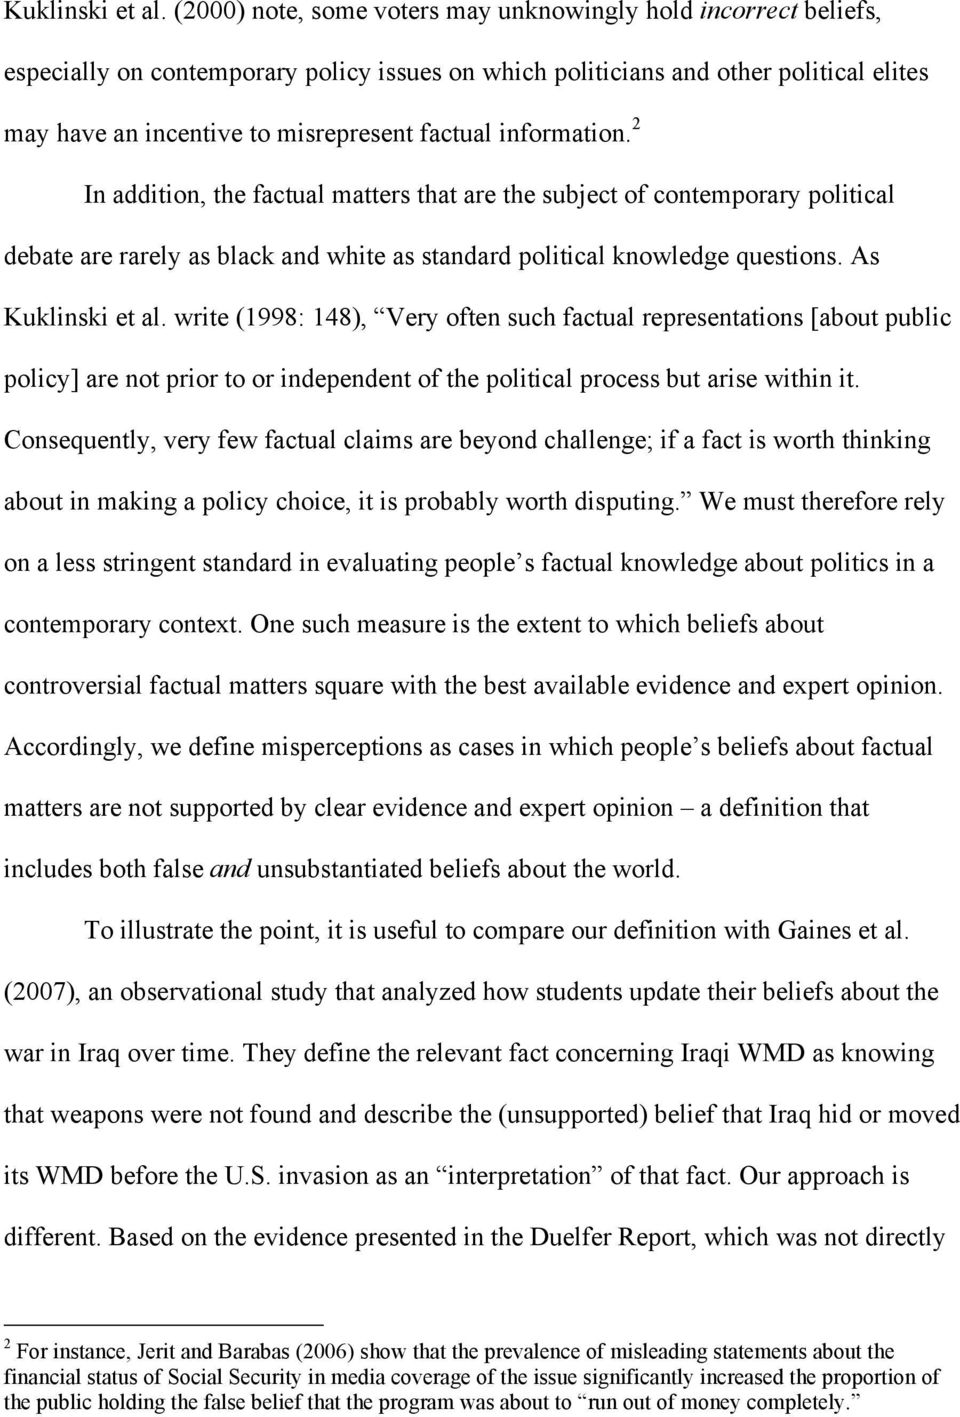 information. 2 In addition, the factual matters that are the subject of contemporary political debate are rarely as black and white as standard political knowledge questions.